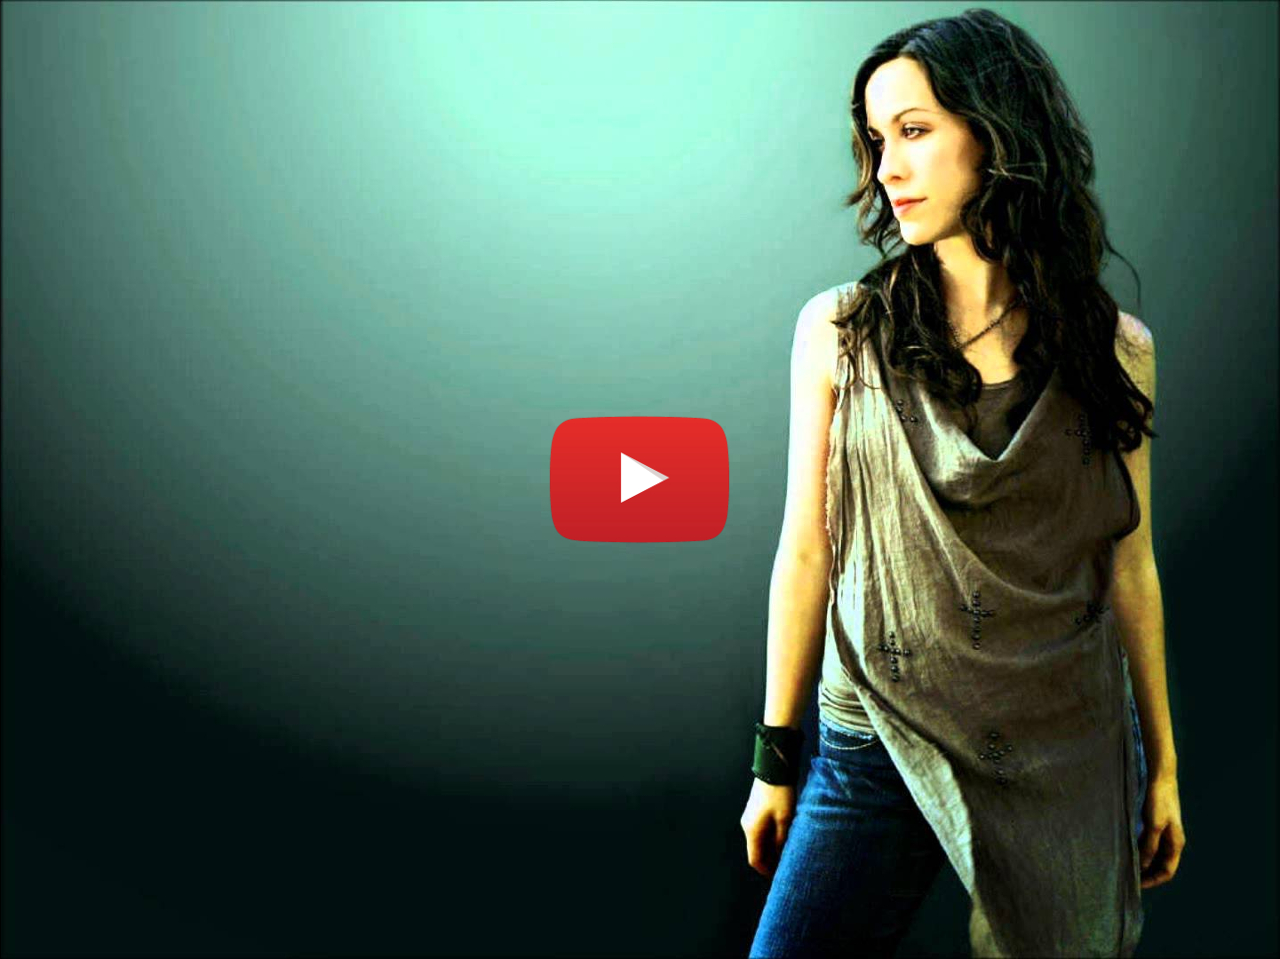 does alanis morissette smoke weed video4 - Does Alanis Morissette smoke weed? You Oughta Know!